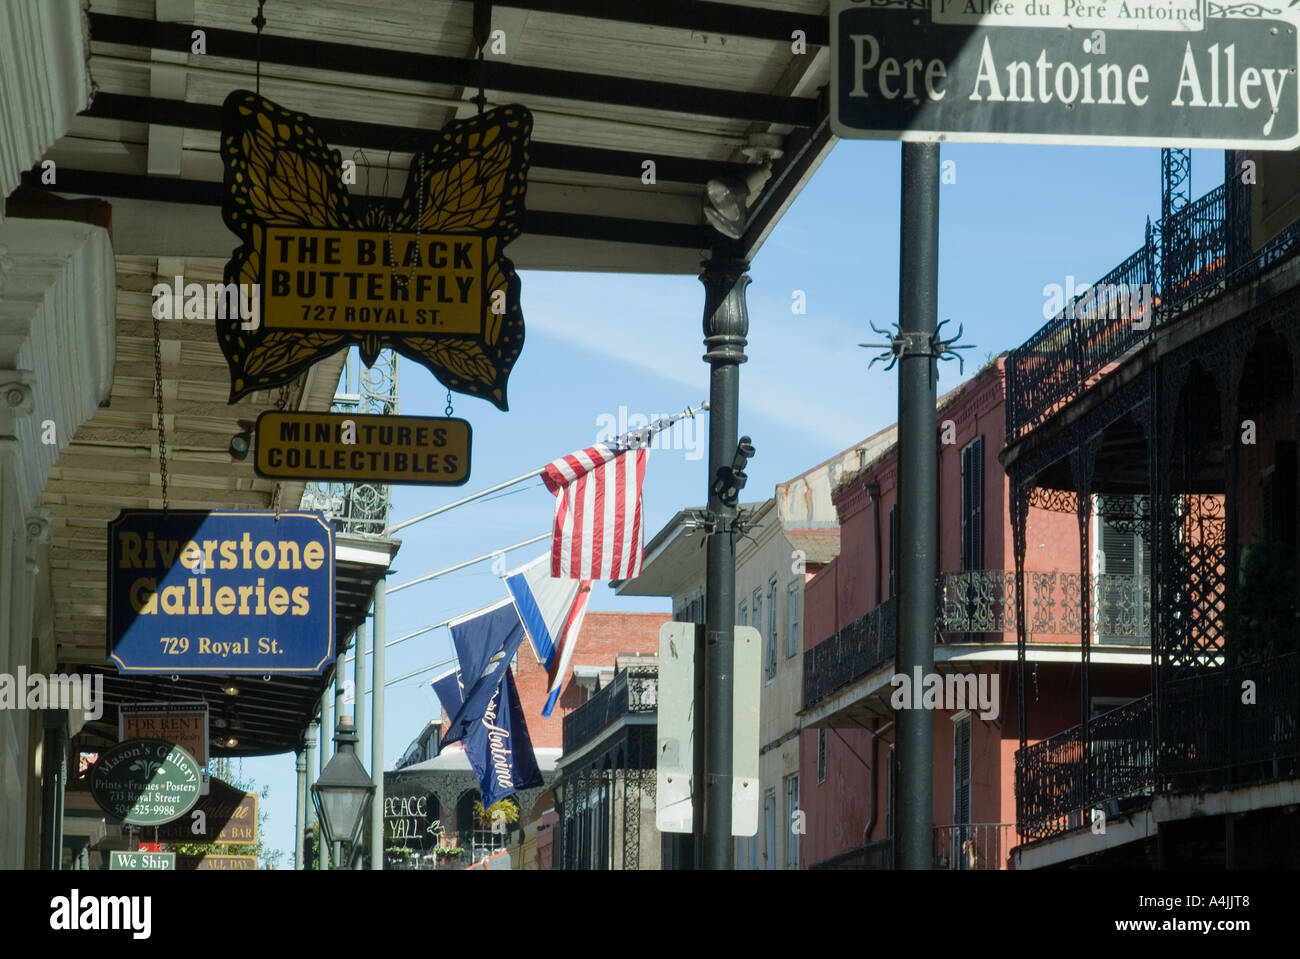 Pere Antoine Alley, French Quarter, New Orleans, Louisiana - Stock Image b68b0288692